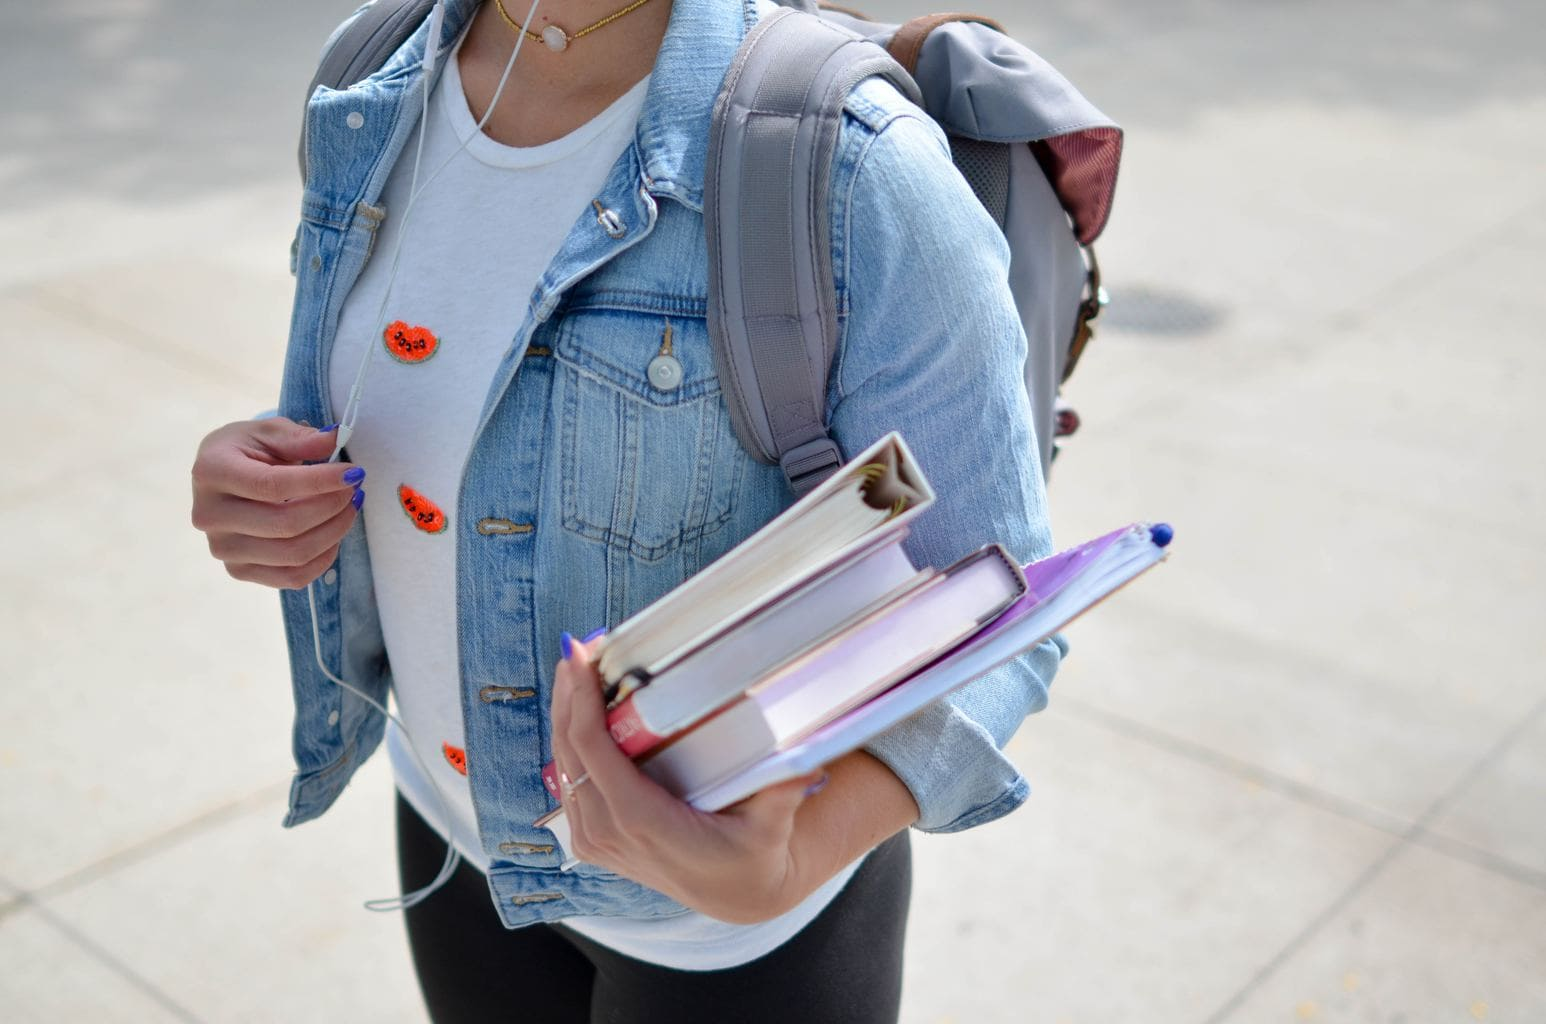 college girl with backpack carrying books